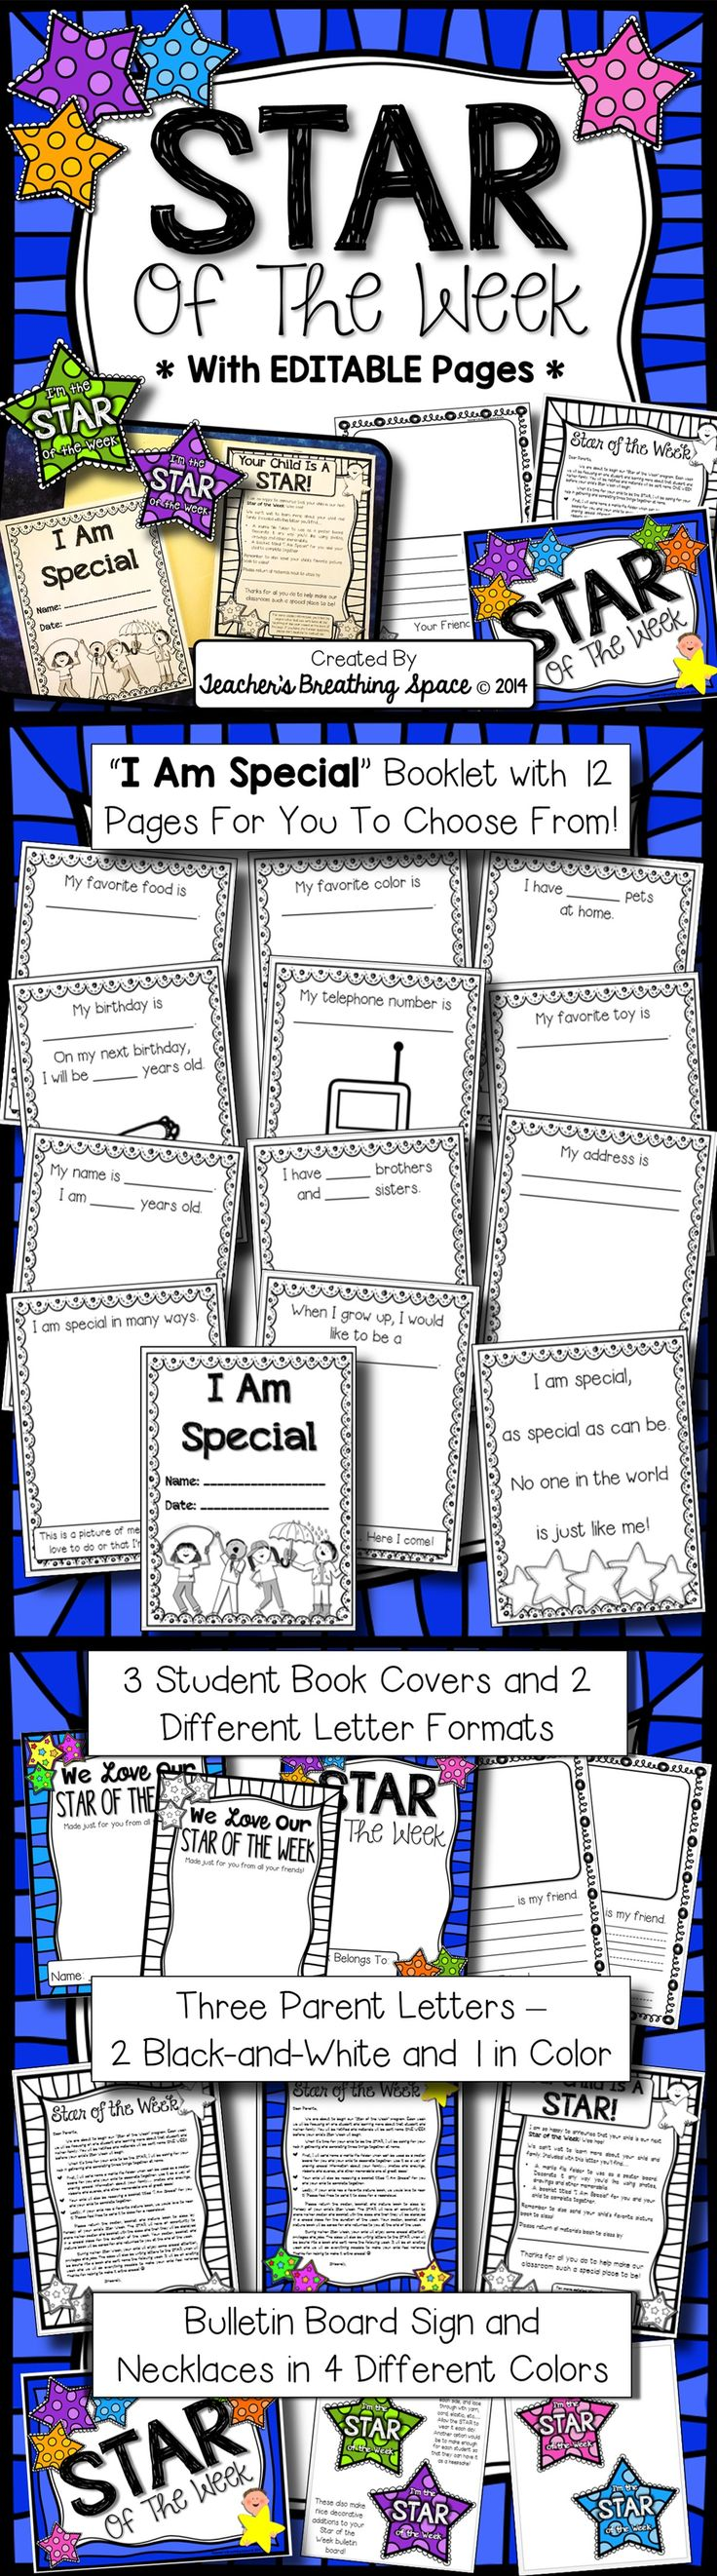 Star of the Week Program Pack with EDITABLE Pages --- Includes Parent Letters, Student Booklet, Bulletin Board Materials and Friendly Letters. So fun!